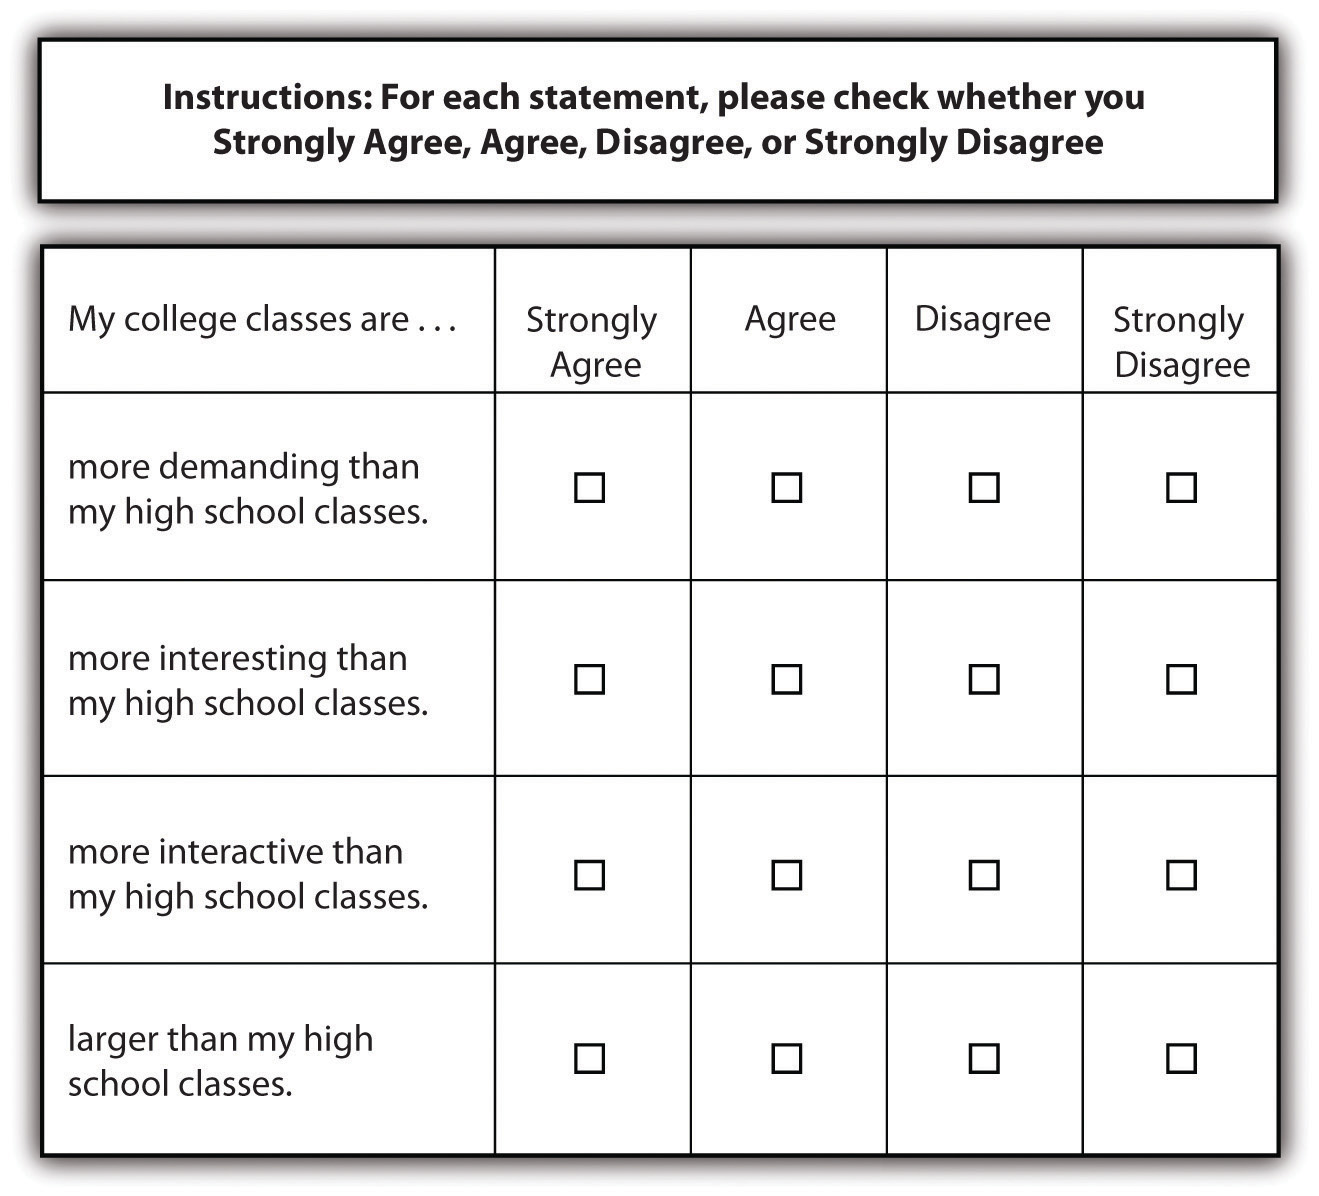 student satisfaction questionnaire template - survey research a quantitative technique